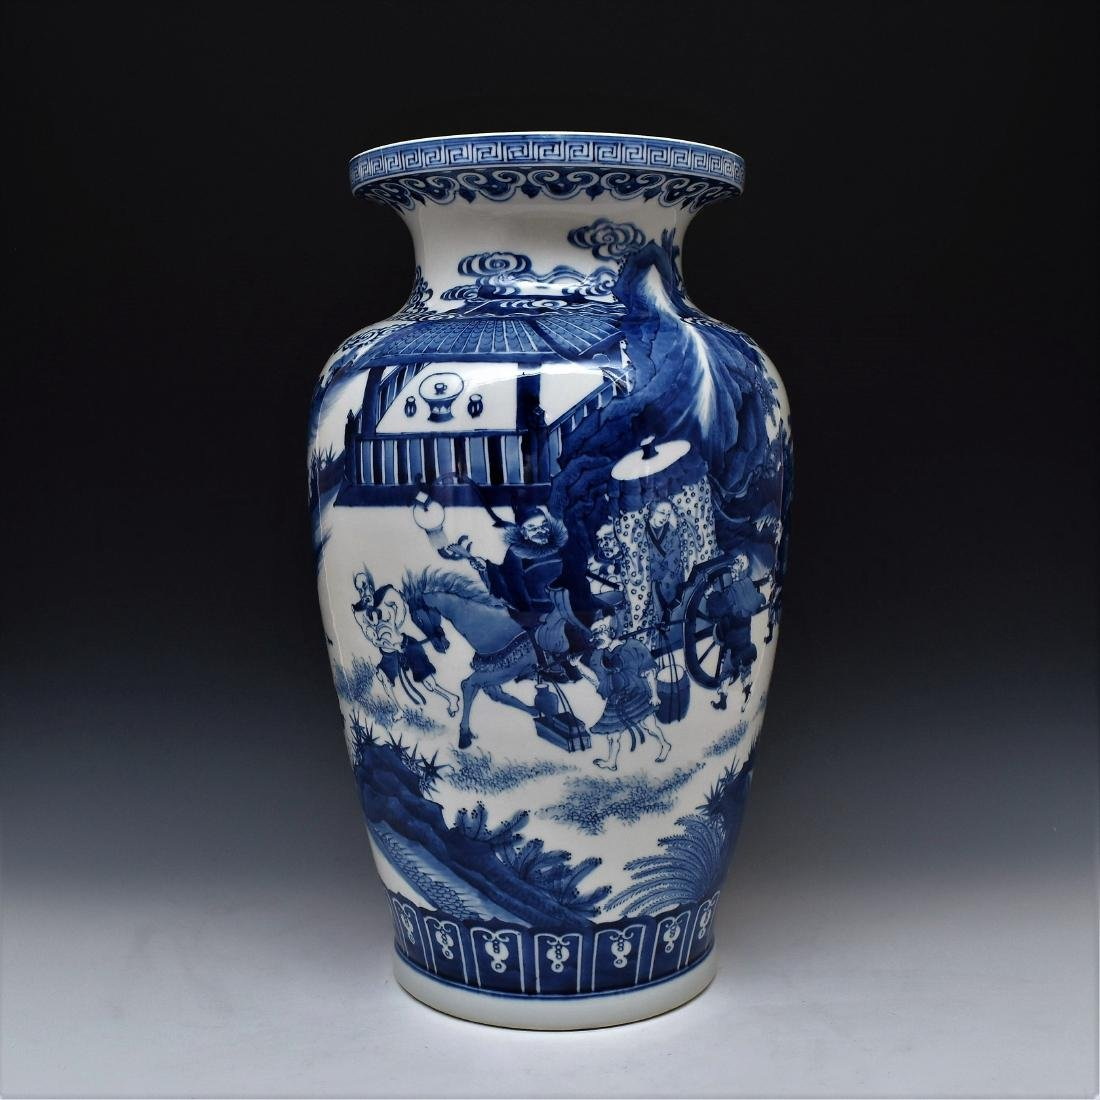 LARGE BLUE & WHITE PORCELAIN VASE, YONGZHENG MARK